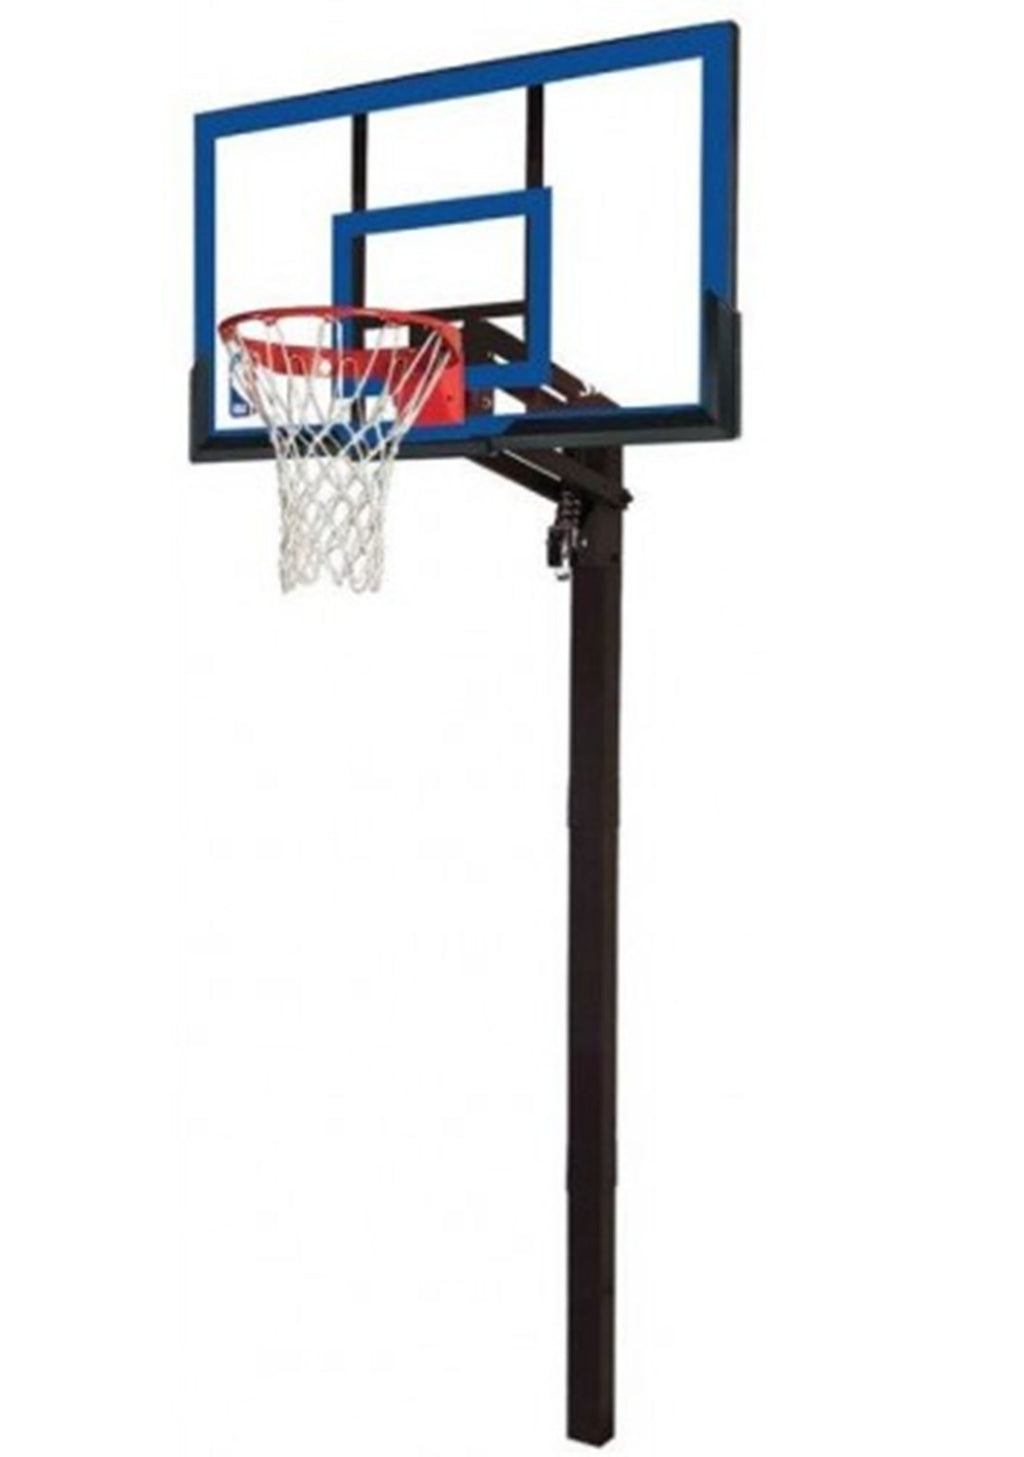 SPALDING 50 INCH NBA ACRYLIC IN GROUND BASKETBALL SYSTEM